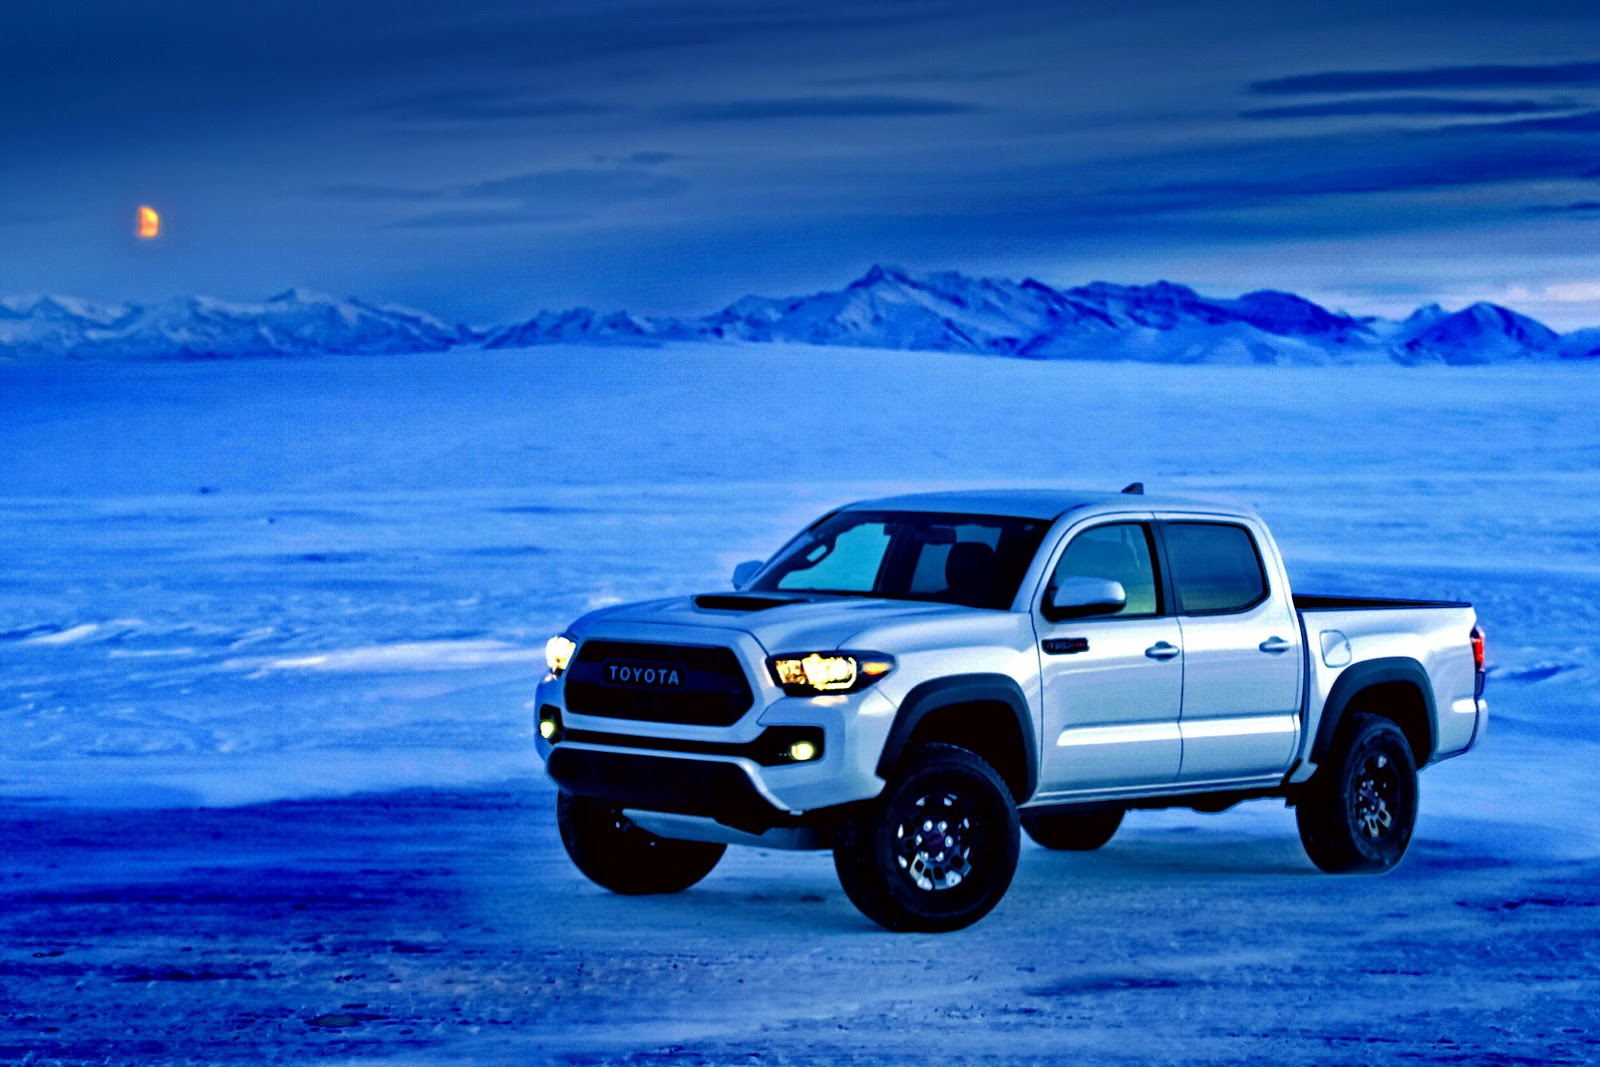 tacoma toyota trd pro road ready pickup series starts adventure extreme autoevolution accessories racing factory version s1 development